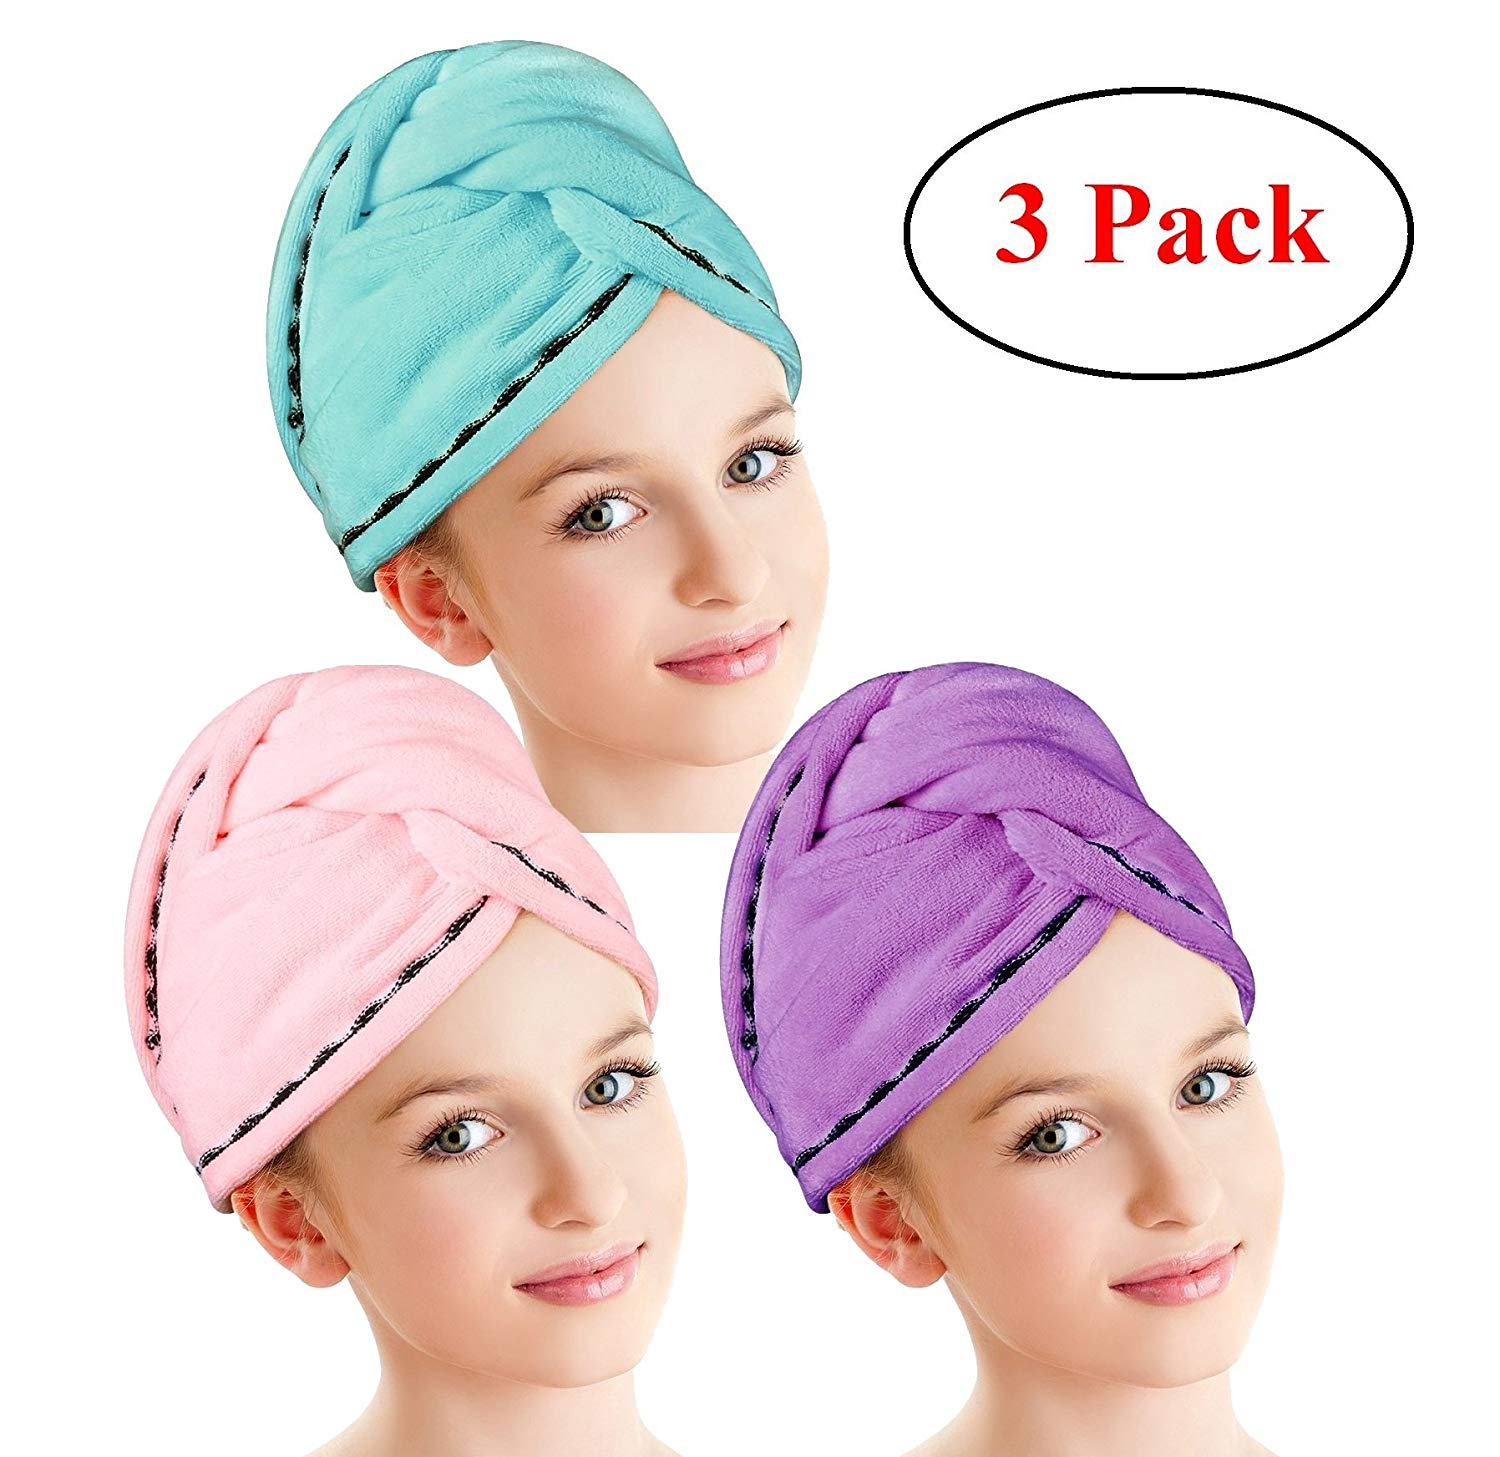 555c8bbf57f Get Quotations · Hair Drying Towels, Fast Drying Hair Cap, Long Hair  Wrap,Super Absorbent Twist